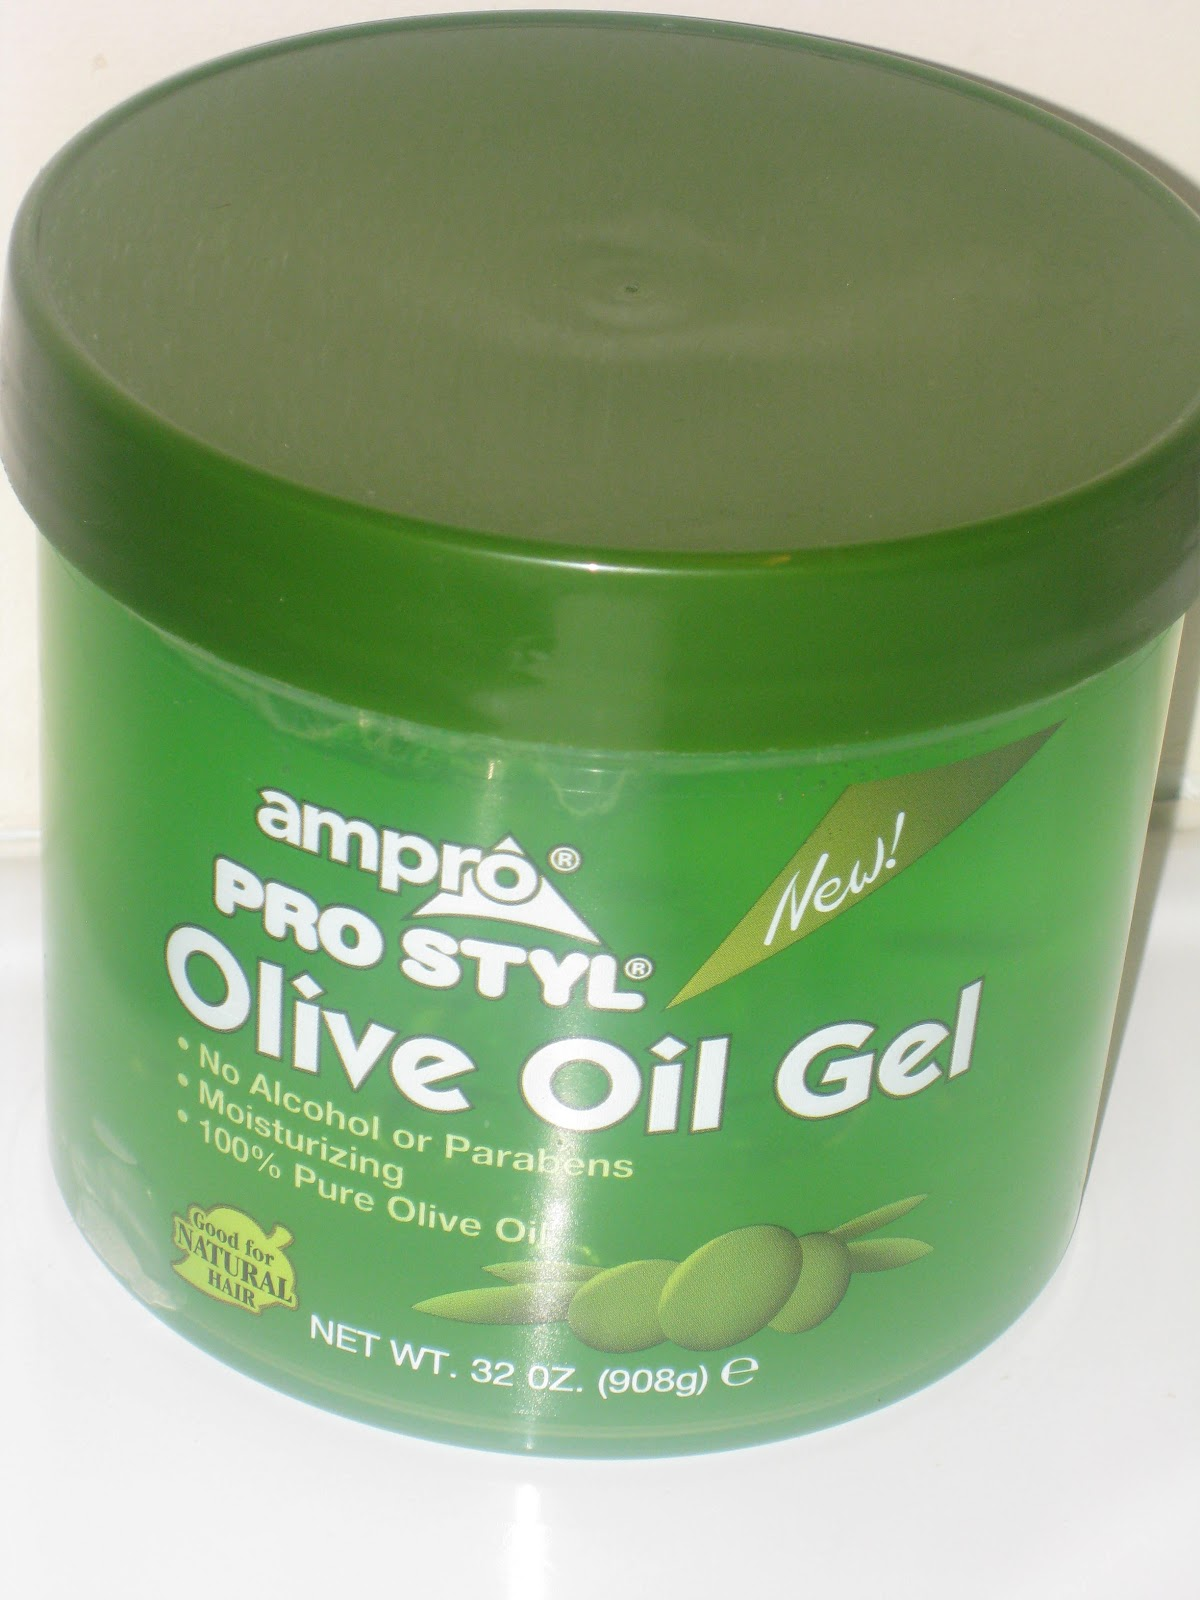 Is Ampro Pro Styl Gel Good For Natural Hair